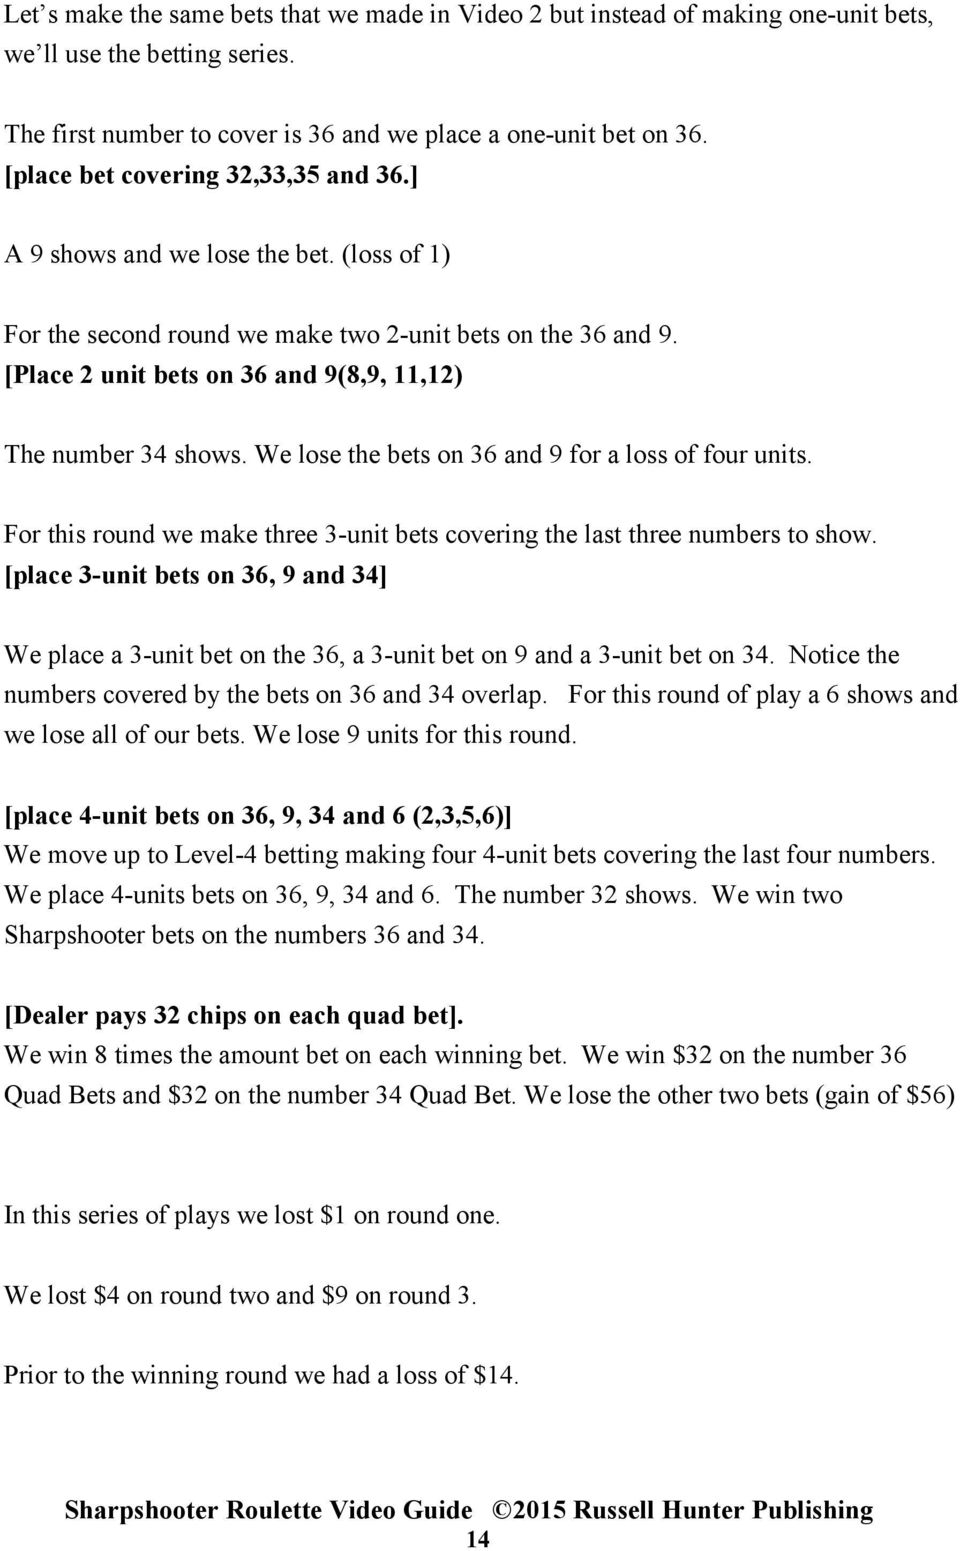 [Place 2 unit bets on 36 and 9(8,9, 11,12) The number 34 shows. We lose the bets on 36 and 9 for a loss of four units. For this round we make three 3-unit bets covering the last three numbers to show.